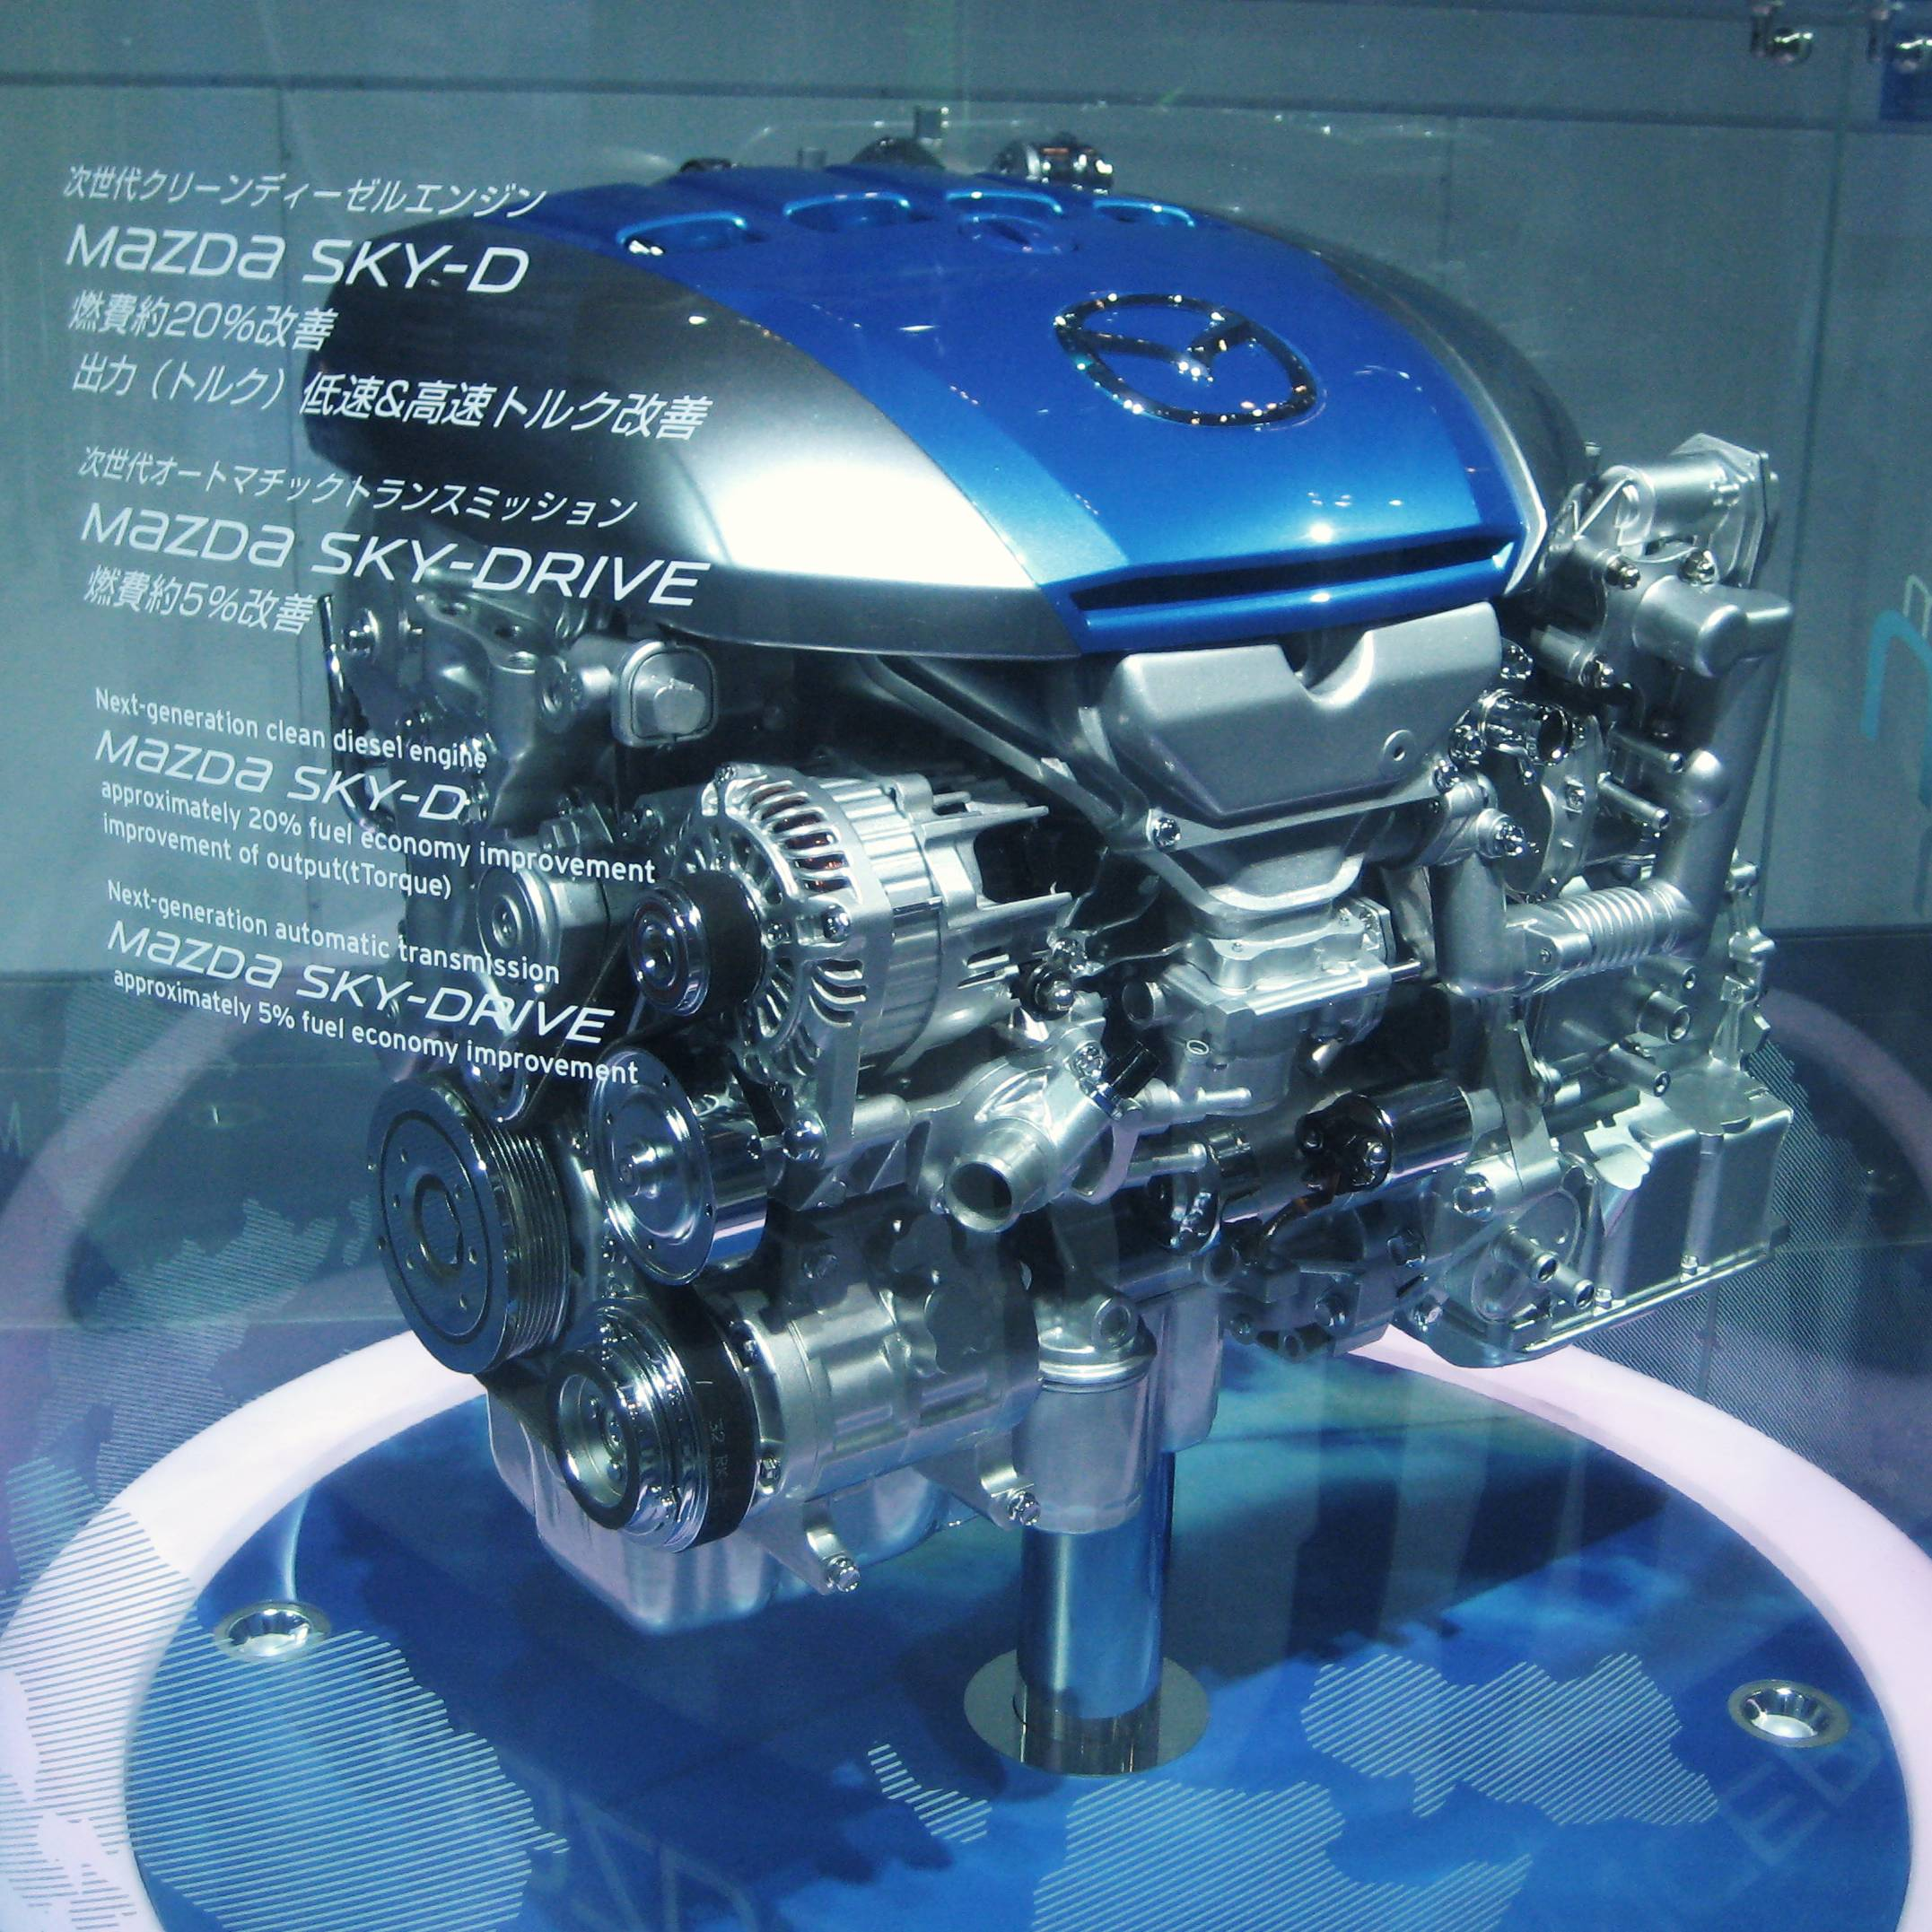 mazda 3 0 v6 engine diagram head casket mazda diesel engine wikipedia  mazda diesel engine wikipedia